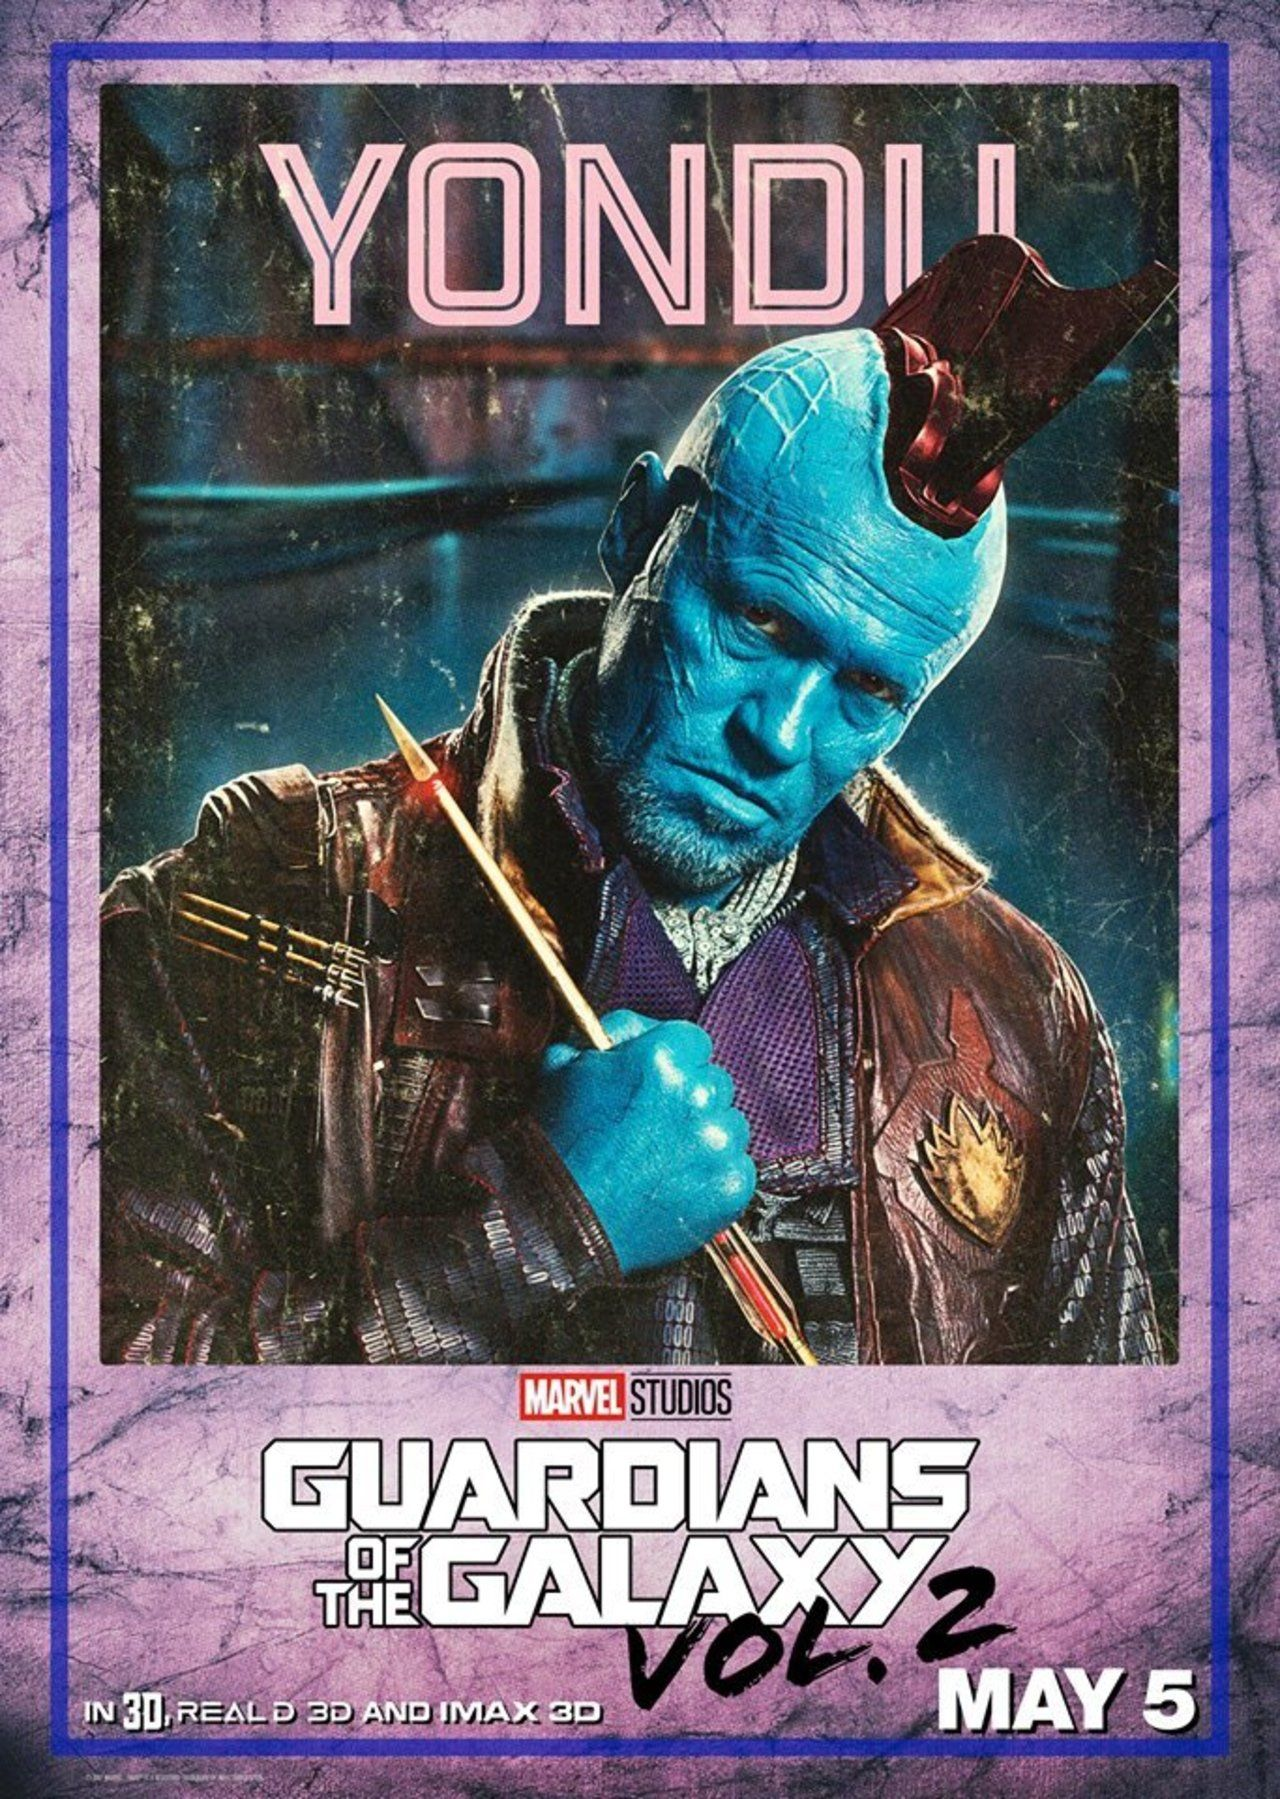 Guardian-of-the-galaxy-vol-2-high-quality-printable-posters-wallpapers-yondu-poster